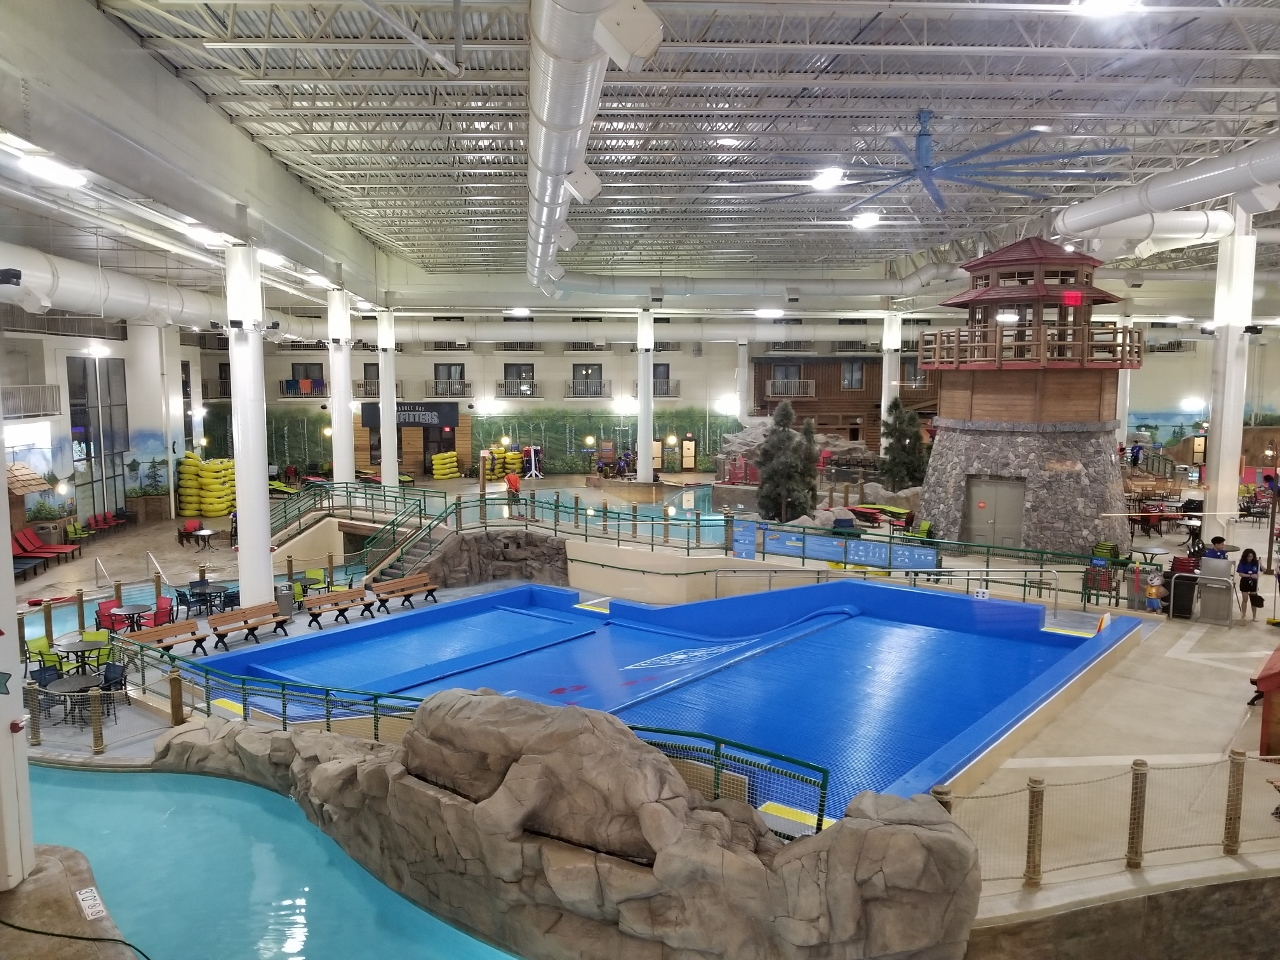 The indoor water park at great wolf lodge in bloomington minnesota